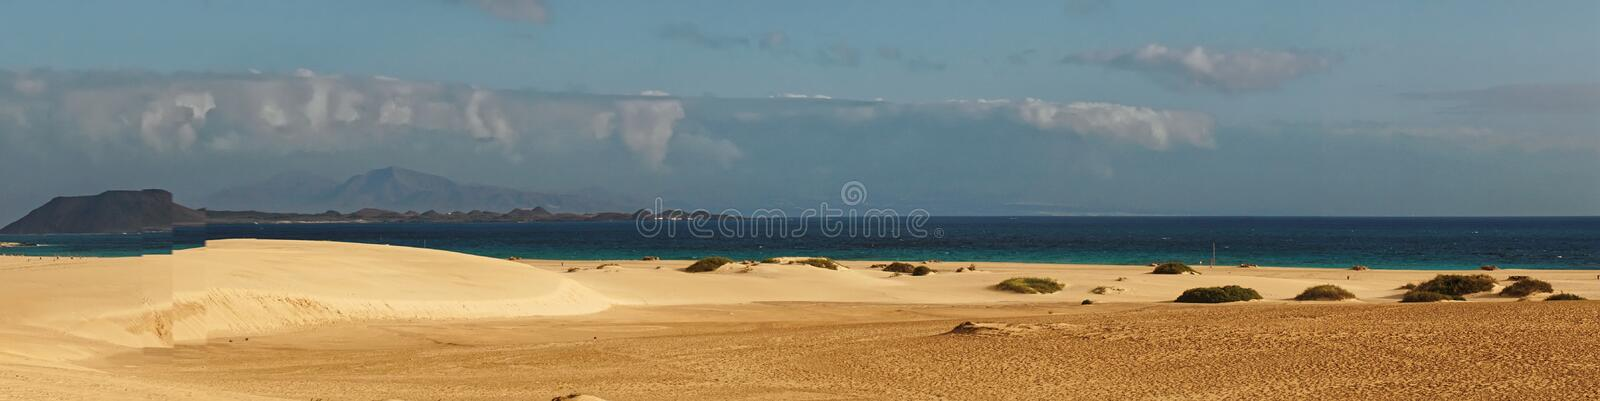 Sandy Beach Panorama stockfoto